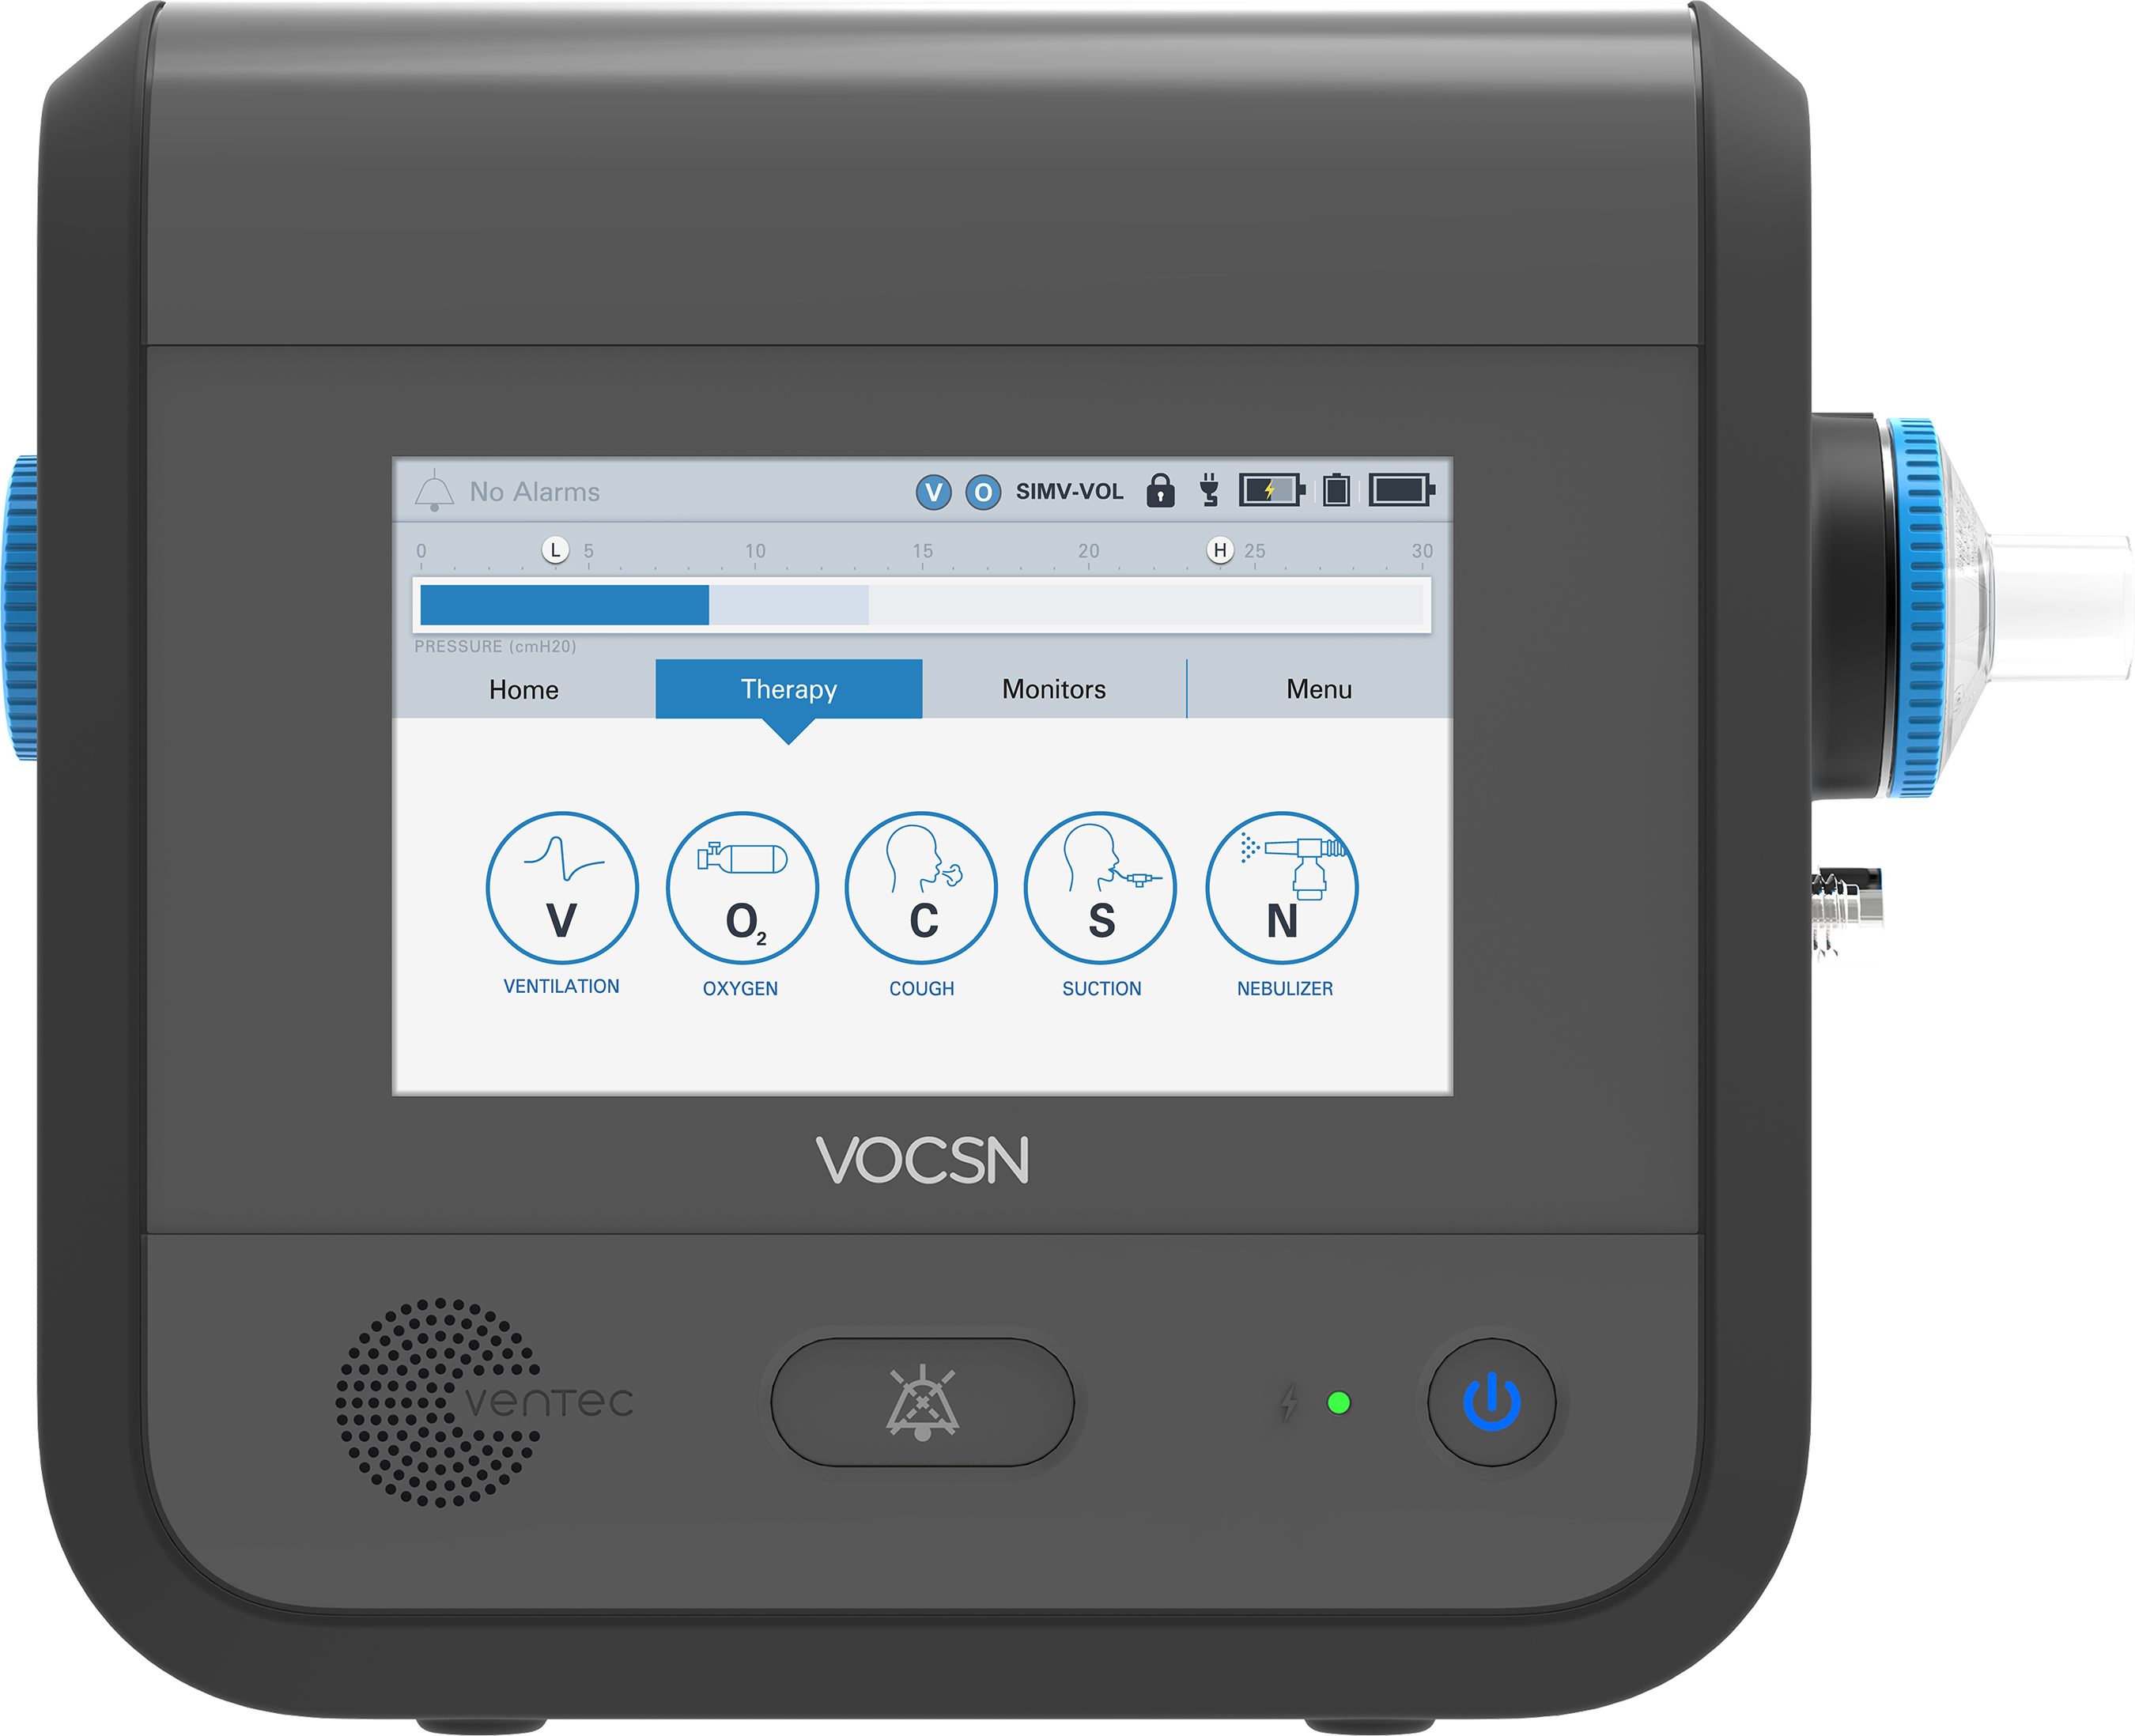 VOCSN integrates five separate medical devices, including a ventilator, oxygen concentrator, cough assist, suction, and nebulizer, into one unified respiratory system. (Photo: Business Wire)